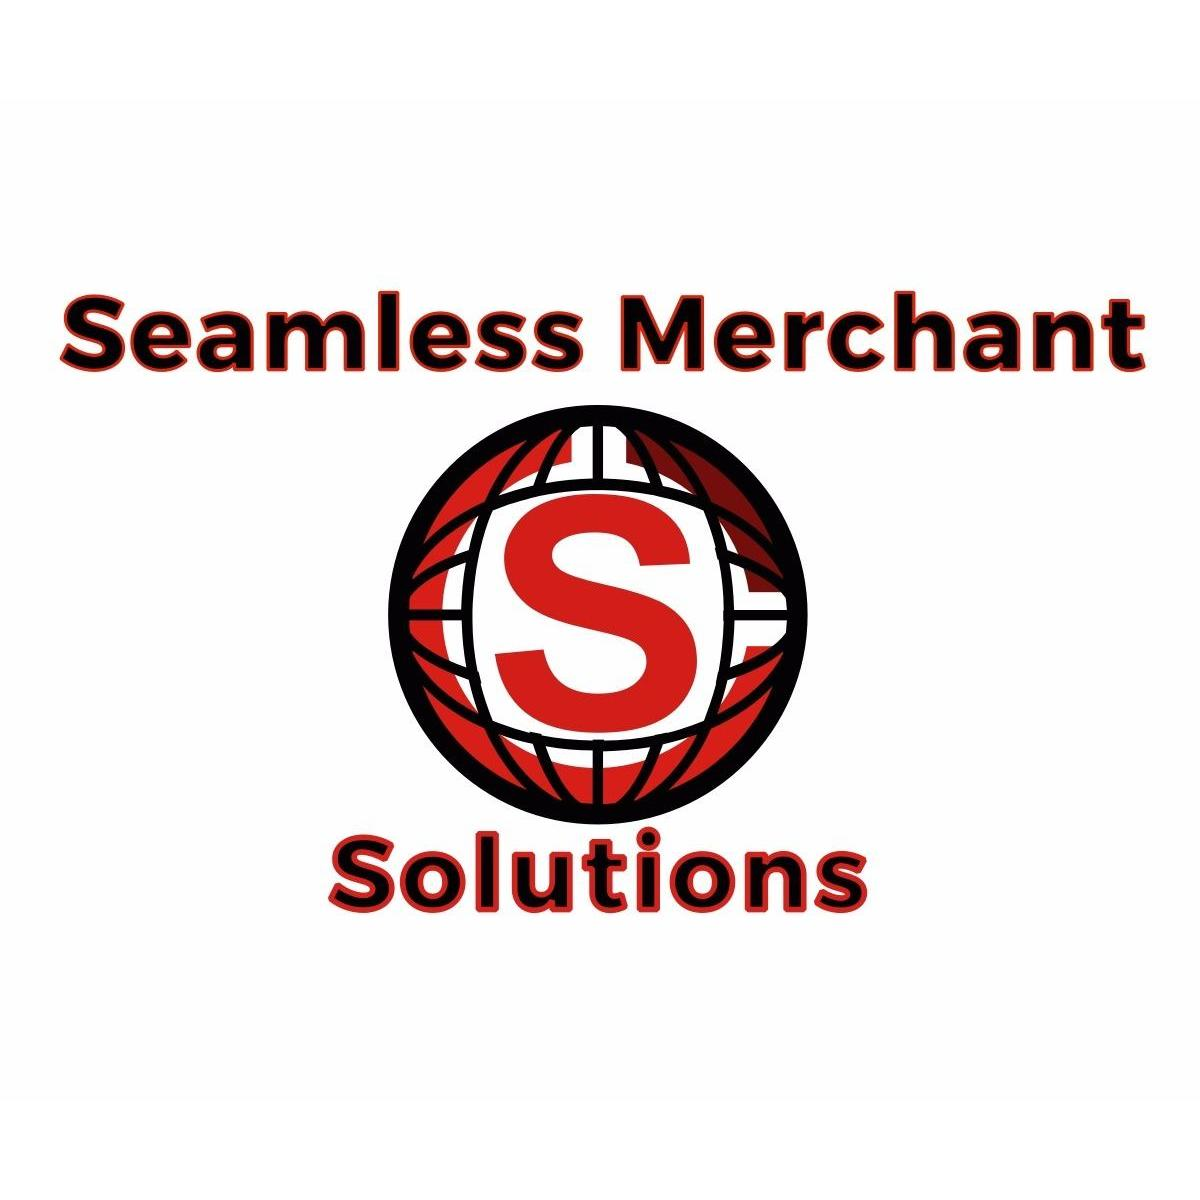 Seamless Merchant Solutions